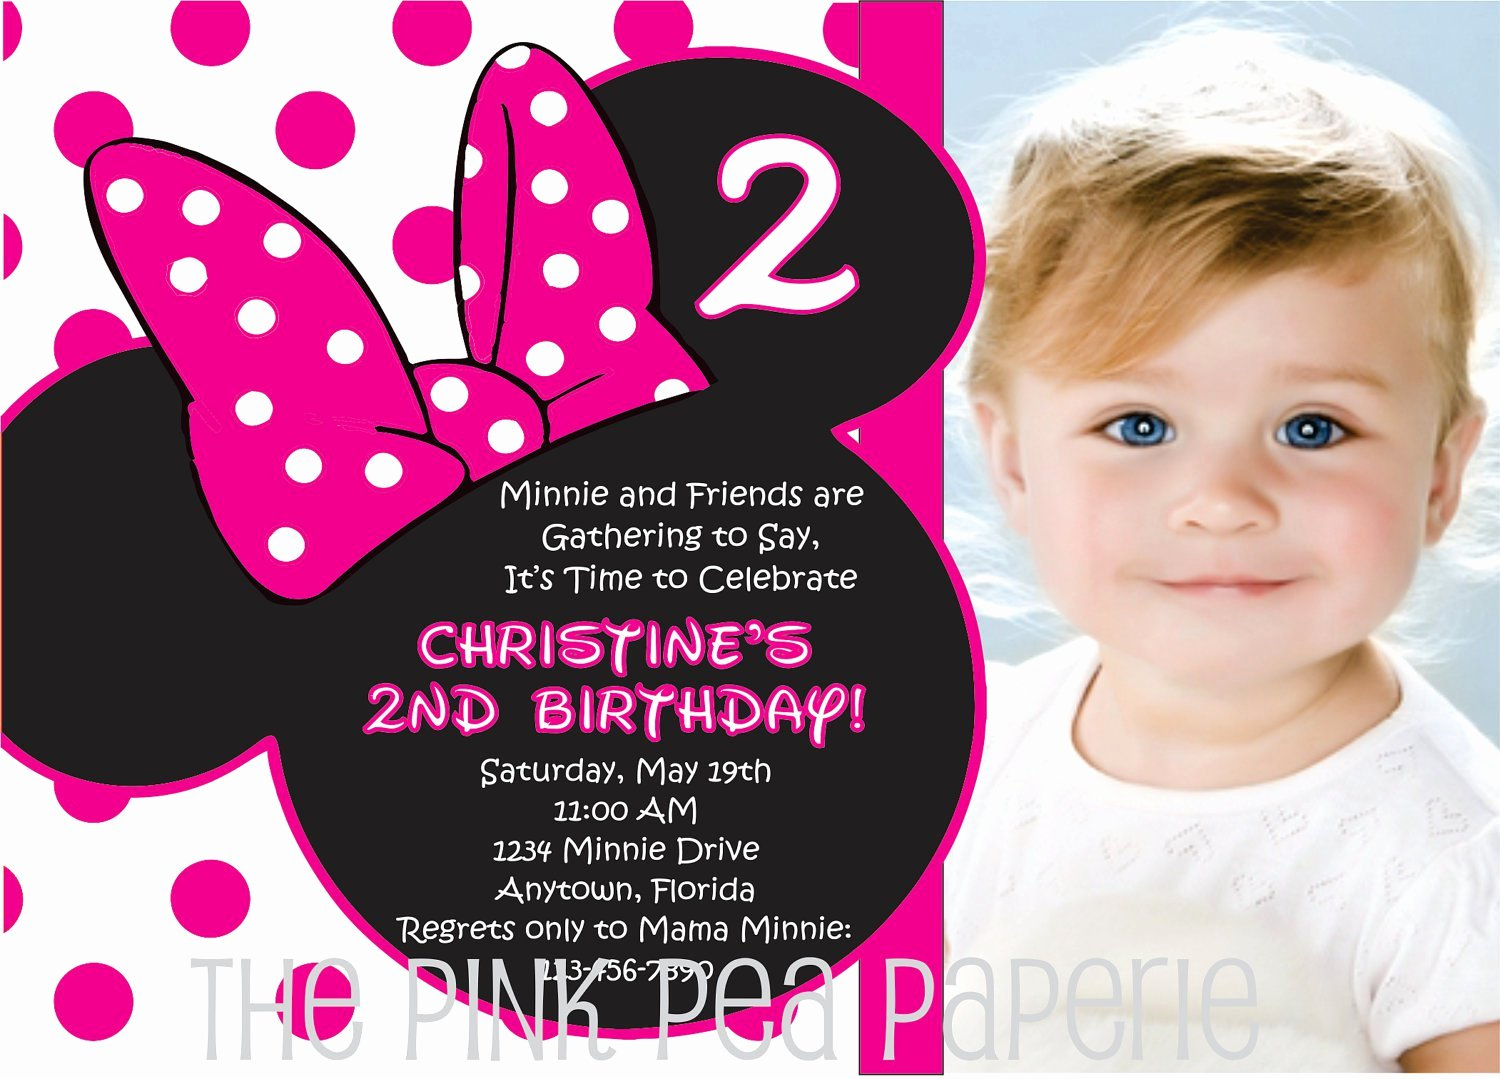 Minnie Mouse Personalized Invitations Fresh Personalized Minnie Mouse Birthday Invitations